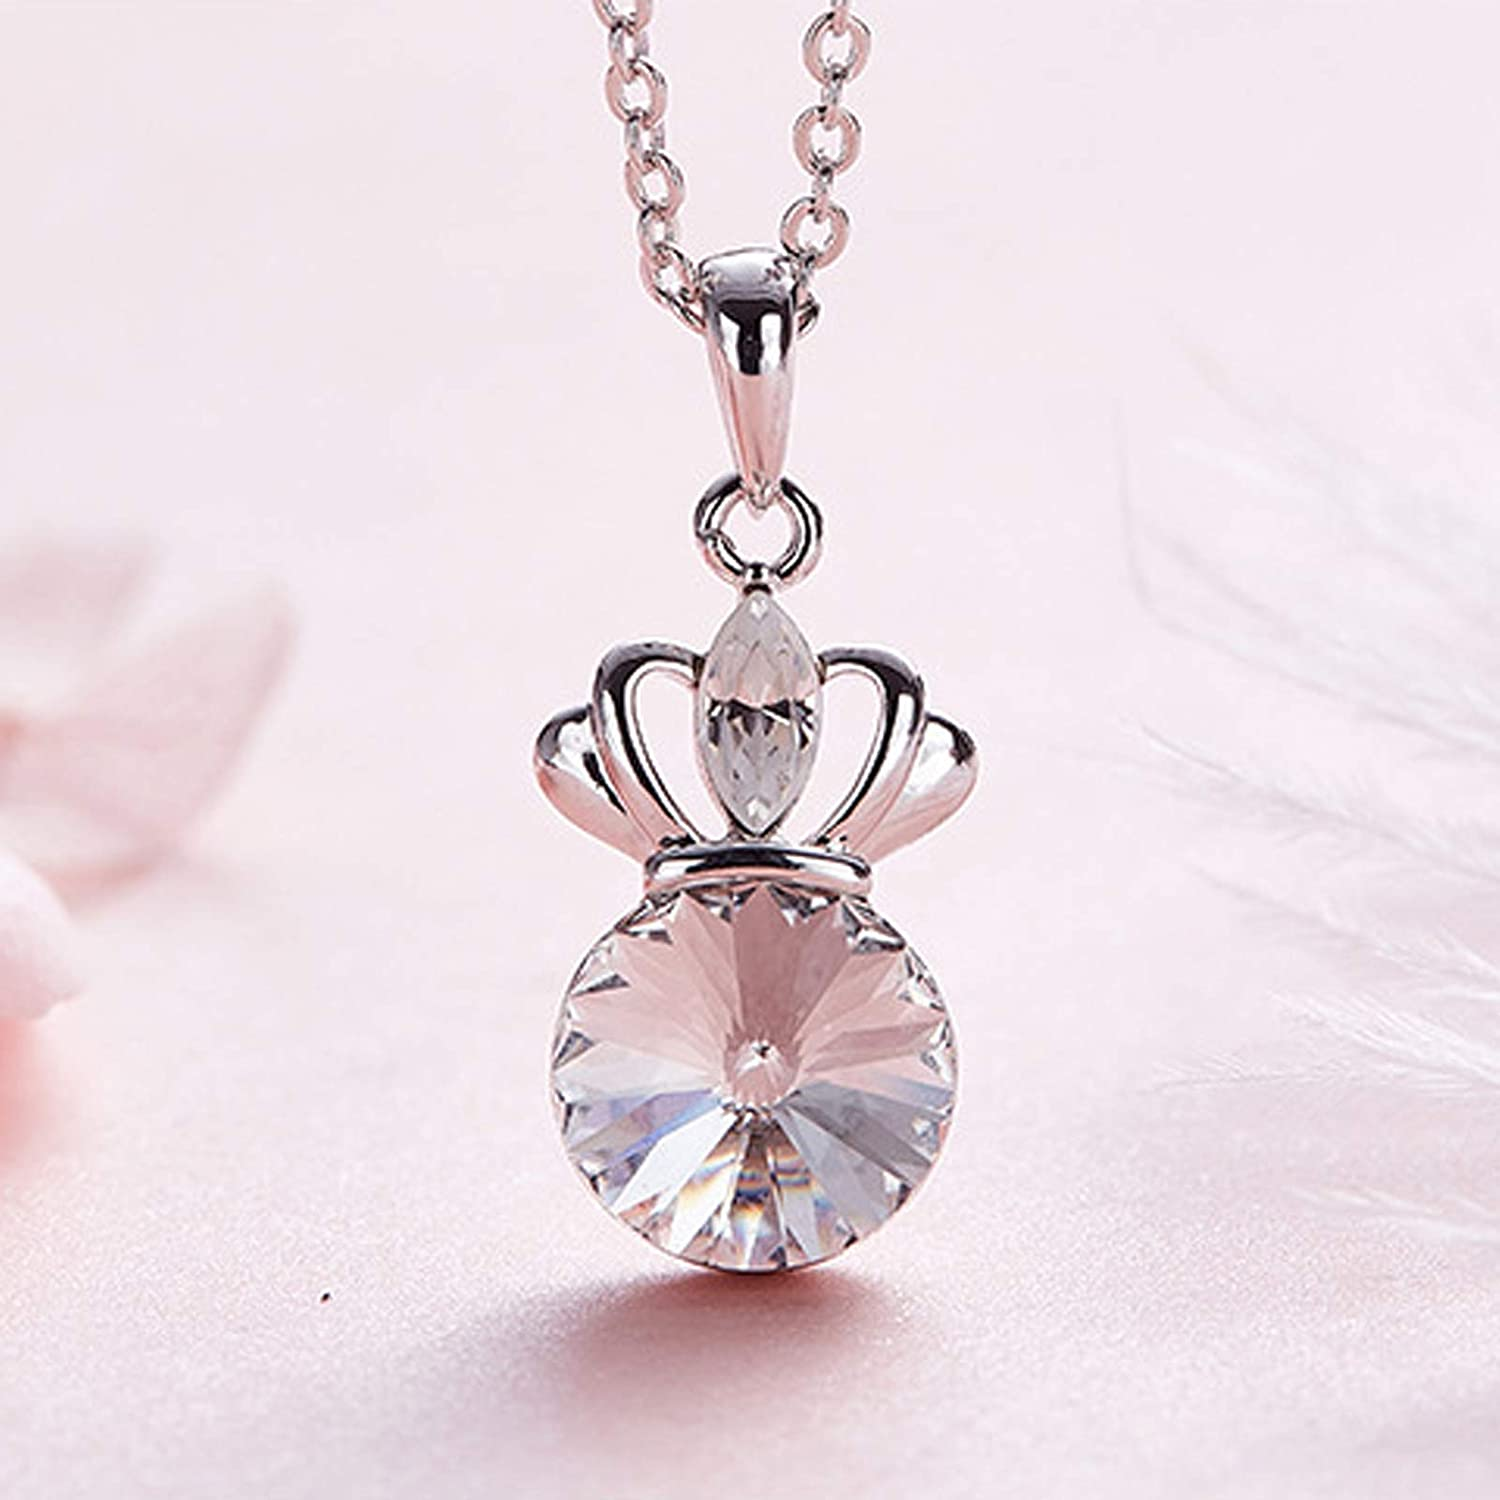 Beydodo Gold Plated Necklace for Women Crown Pendant with Crystal Pendant Necklace Valentines